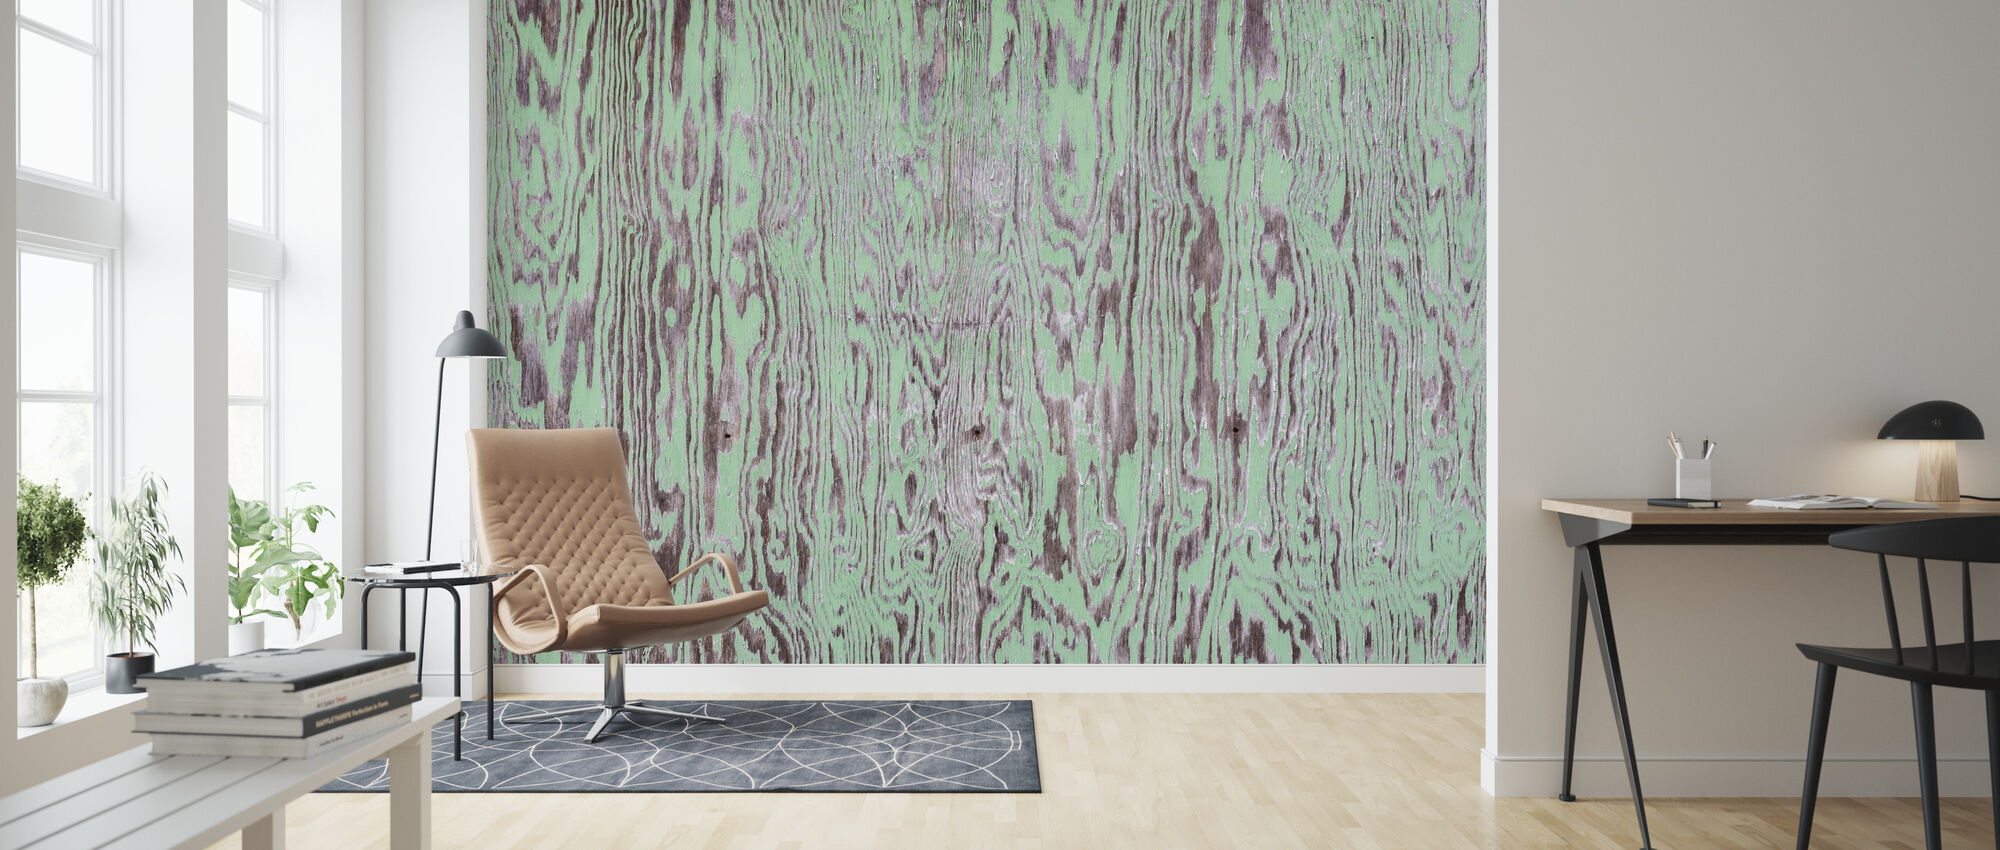 Green Painted Wooden Wall - Wallpaper - Living Room